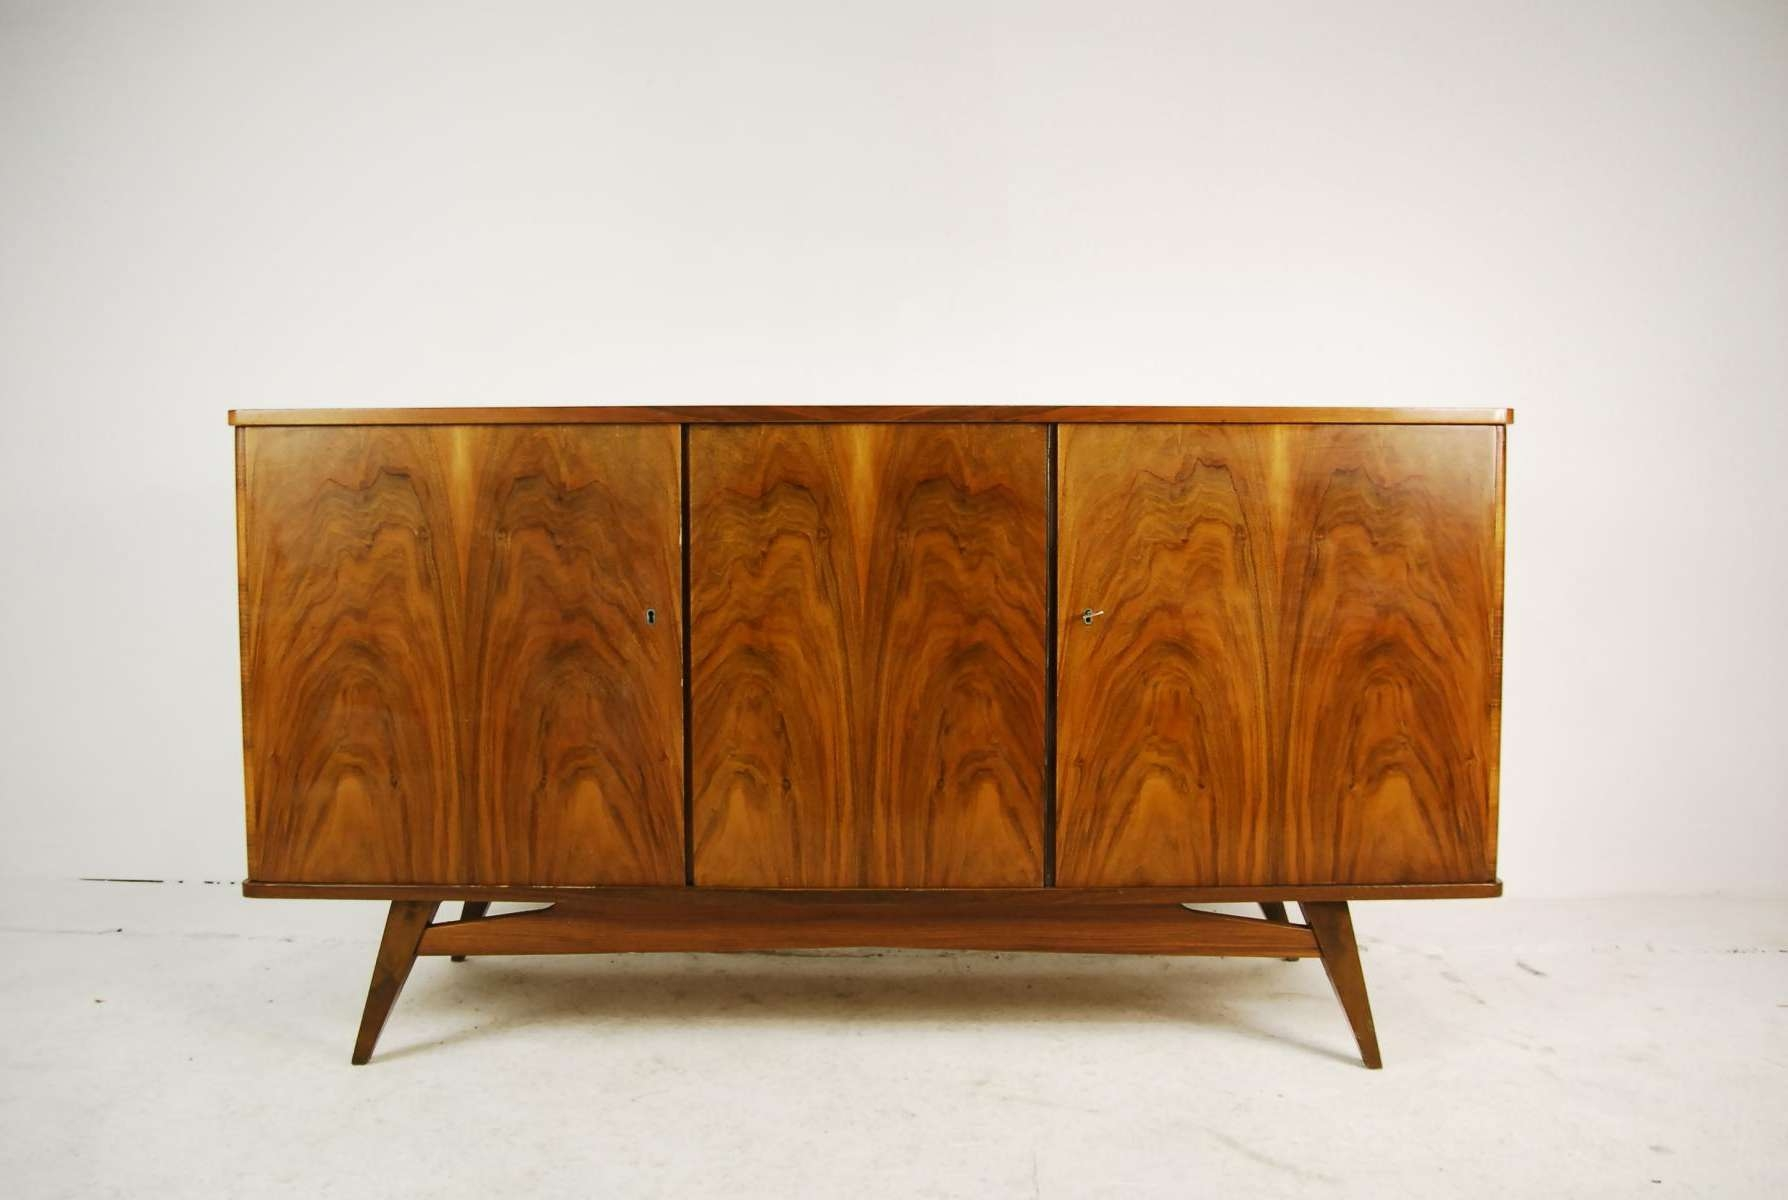 Beech Sideboard From Lodz Furniture Factory, 1960s For Sale At Pamono Inside Beech Sideboards (View 14 of 20)